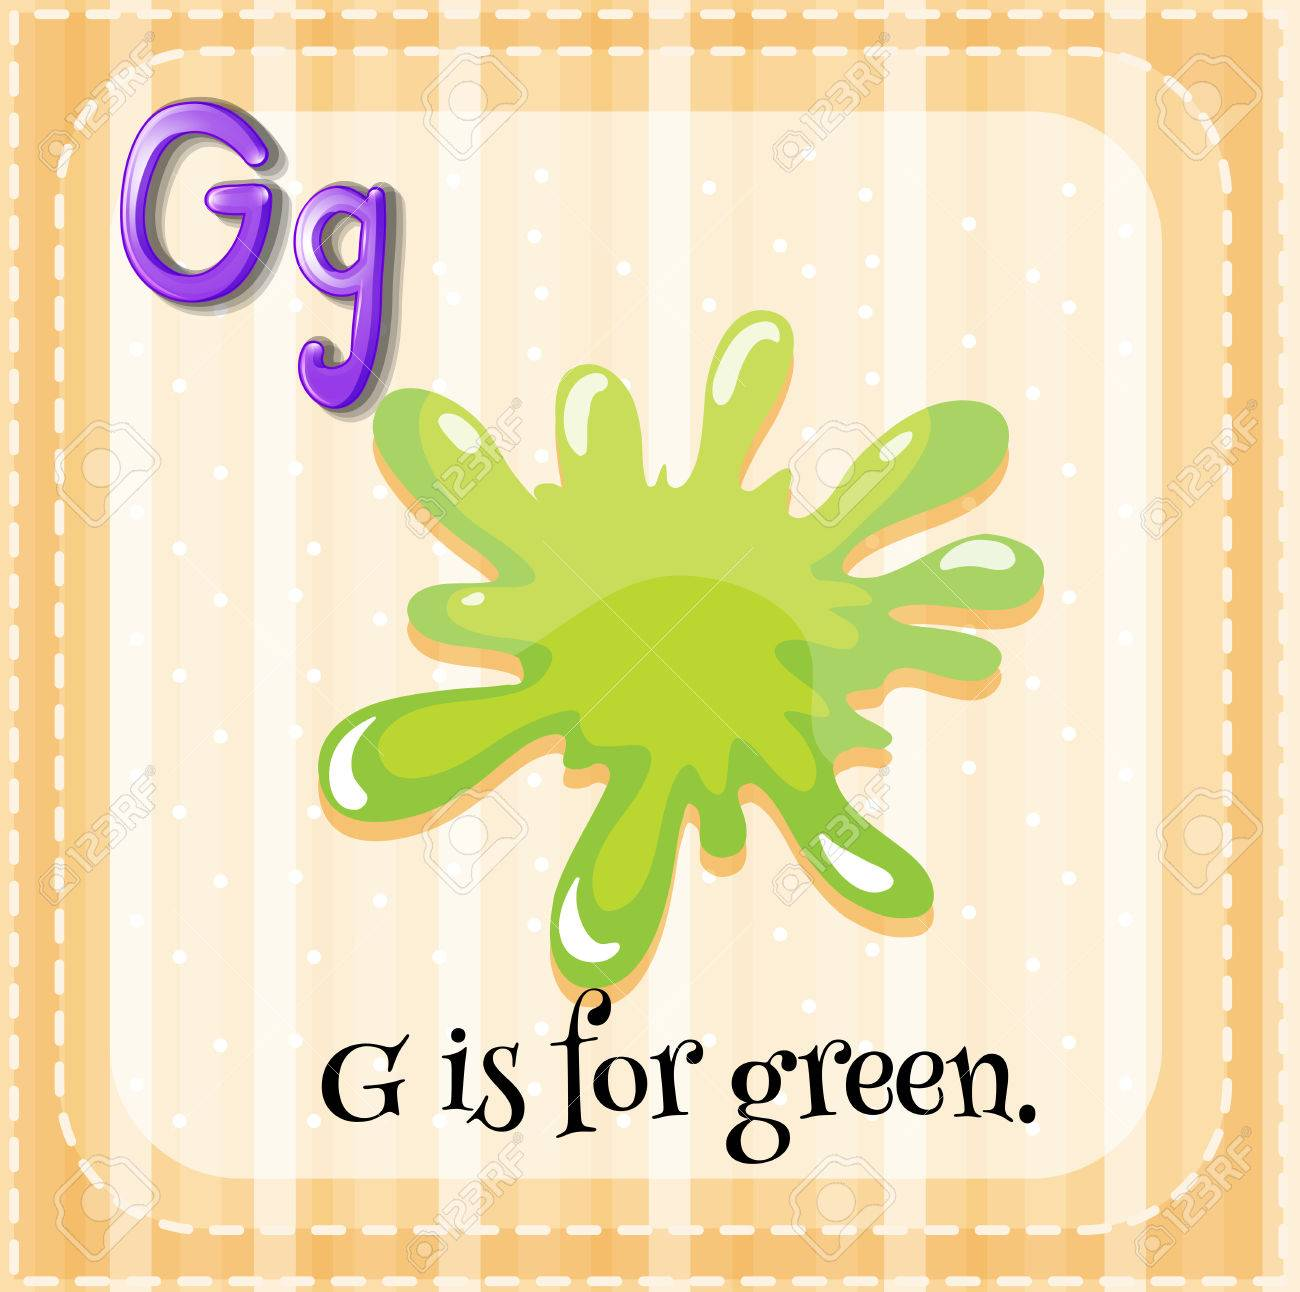 Flashcard Of Letter G With Color Green Royalty Free Cliparts ...